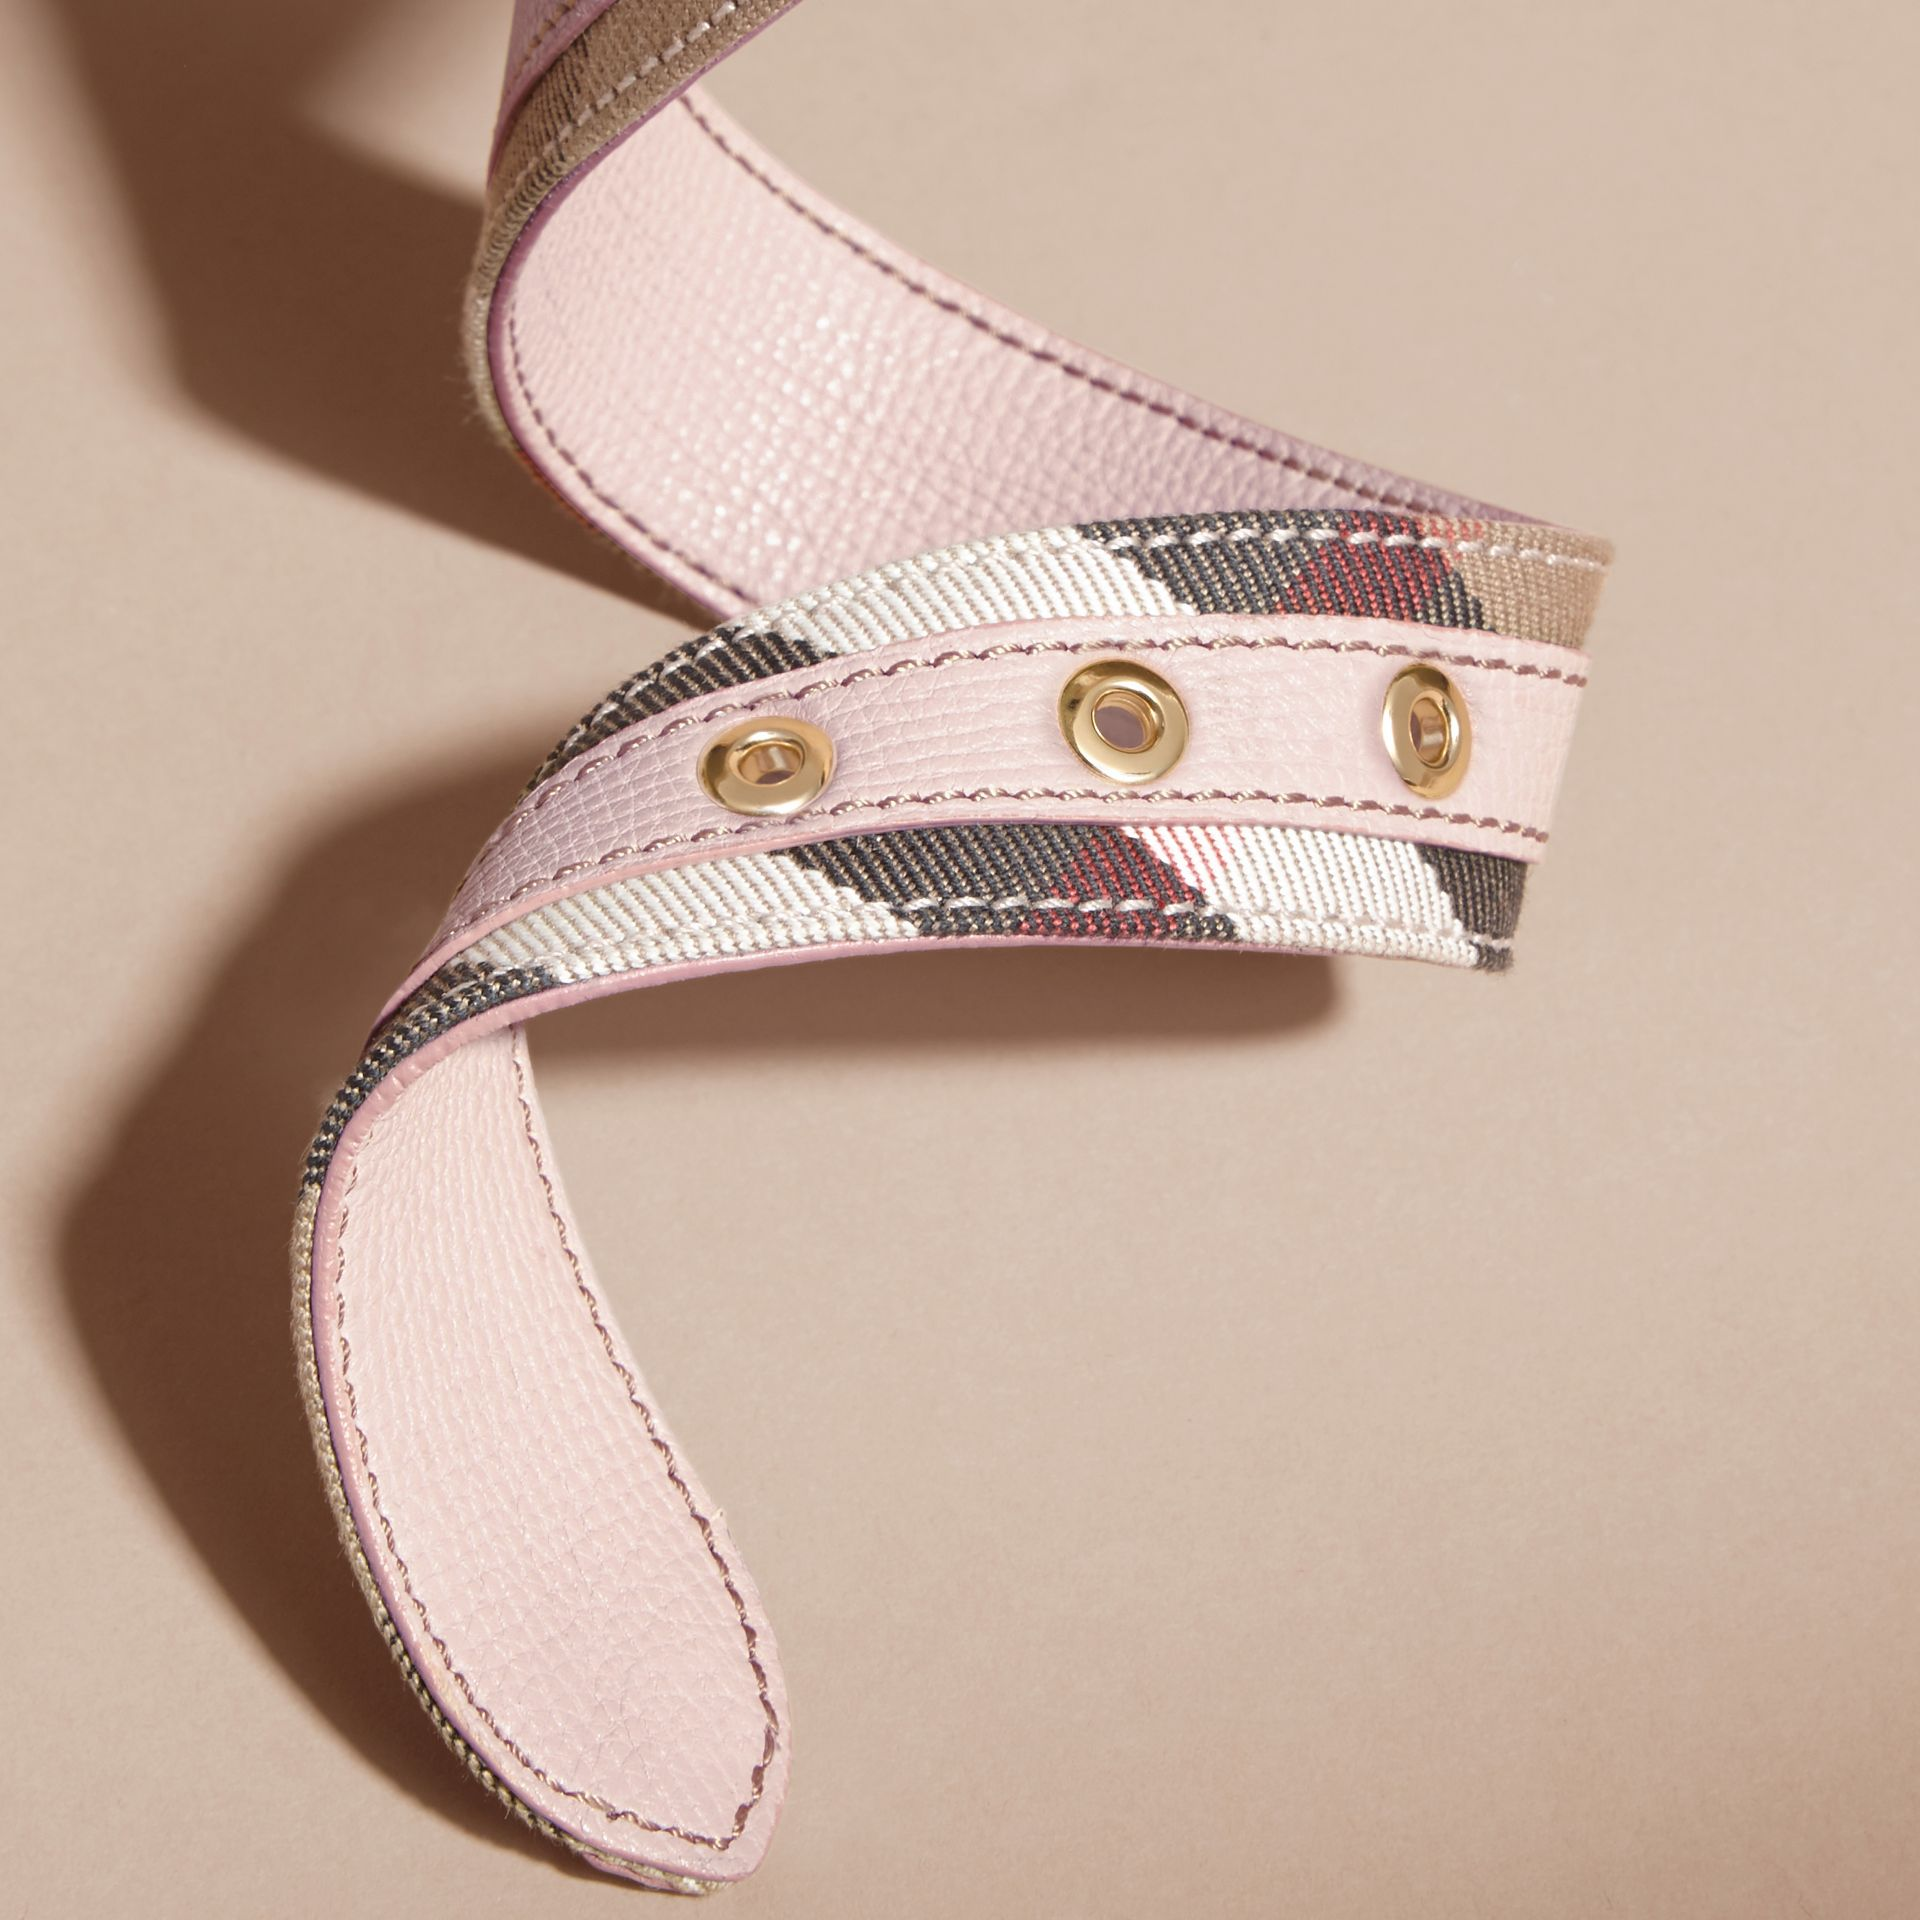 House Check and Grainy Leather Belt in Camel/pale Orchid - Women | Burberry Hong Kong - gallery image 5